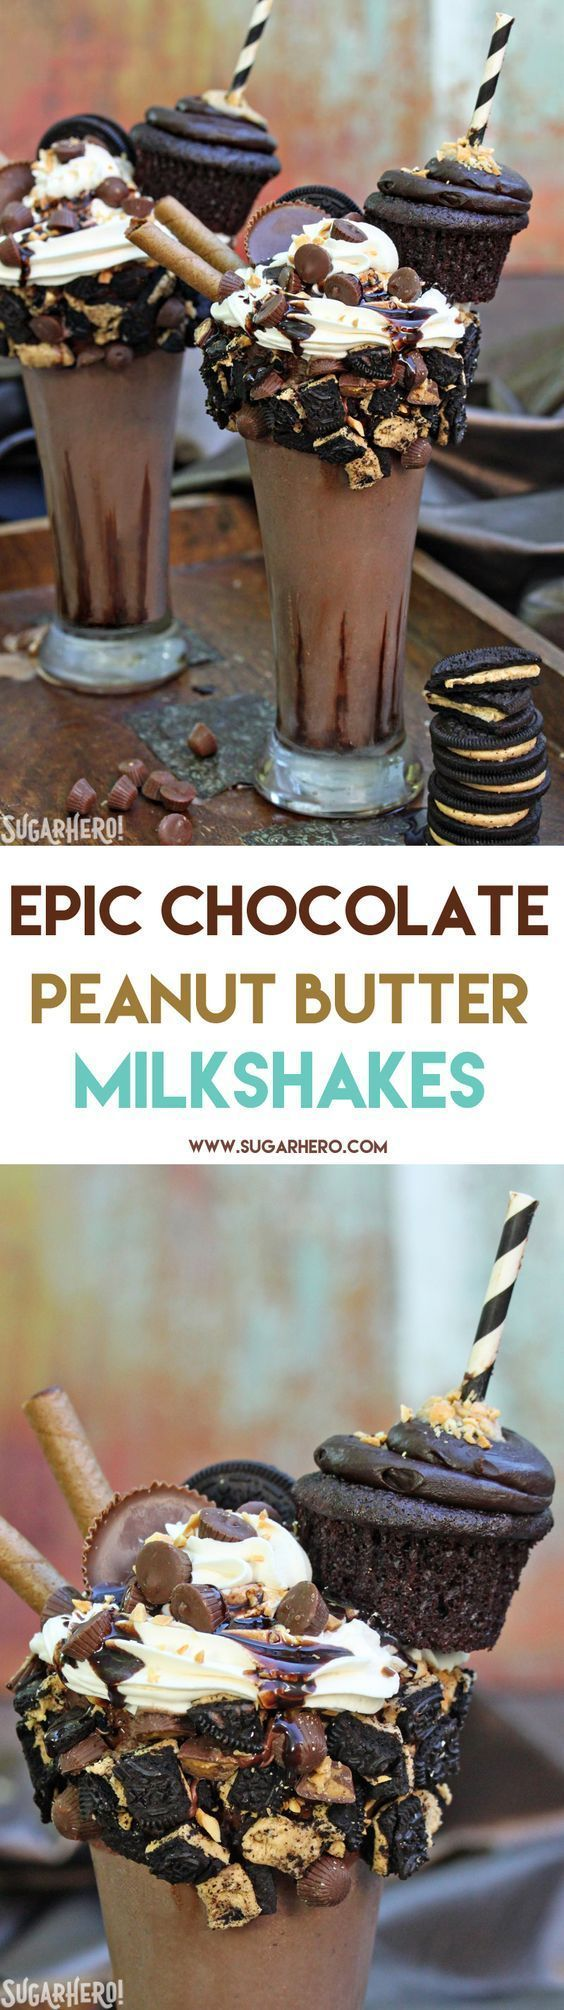 Epic Chocolate Peanut Butter Milkshakes - rich and creamy shakes that will blow your mind! Topped with cookies, candy, whipped cream, and even a whole cupcake!   From http://SugarHero.com